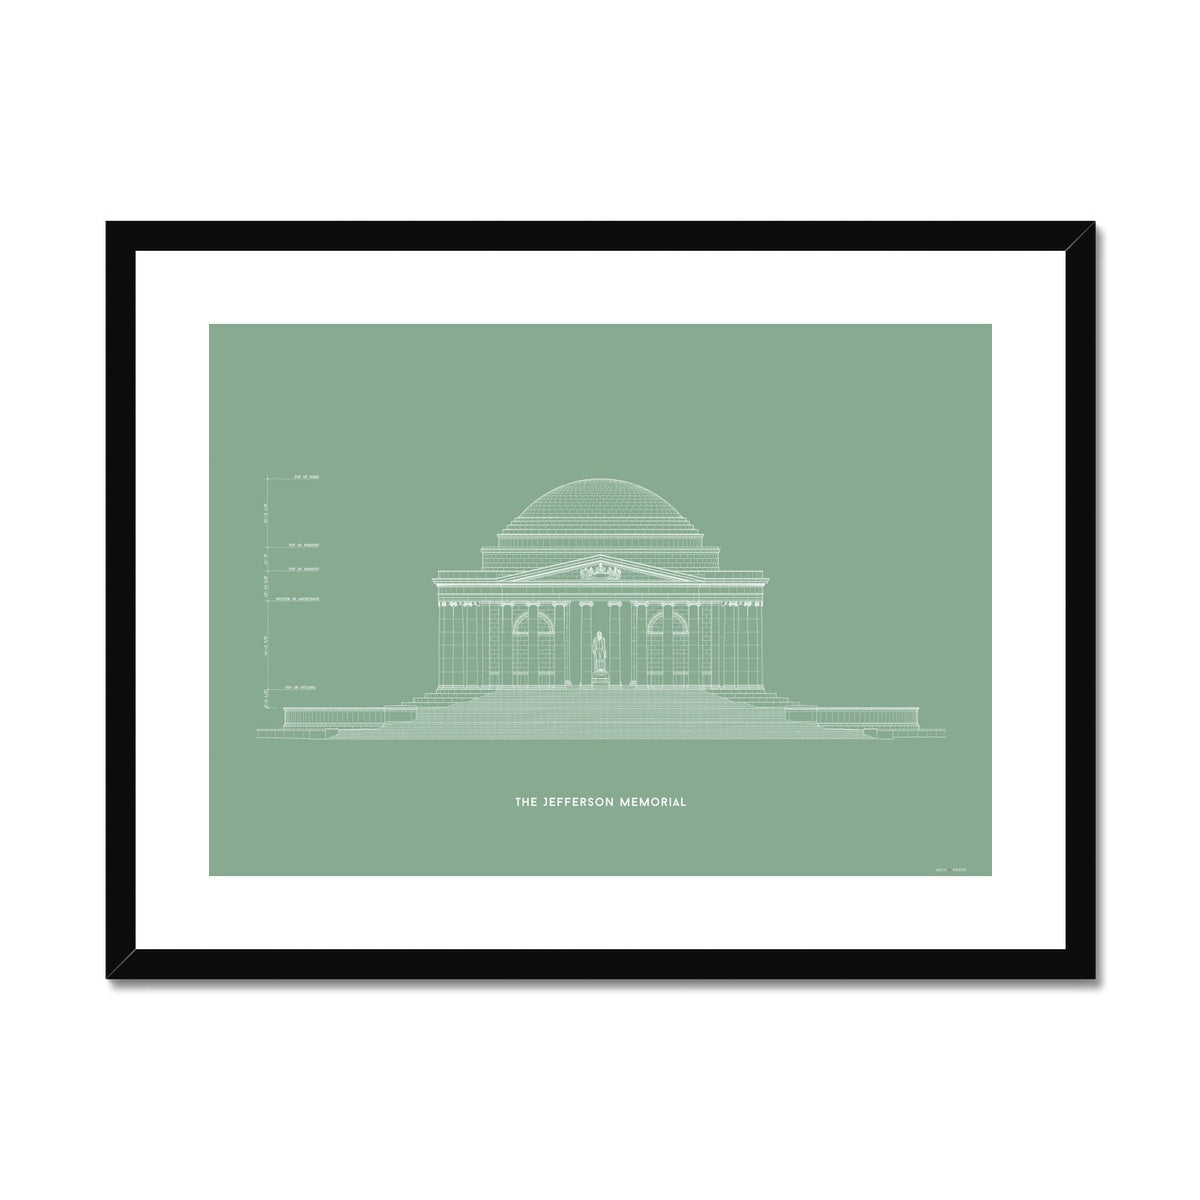 The Jefferson Memorial North Elevation - Green -  Framed & Mounted Print